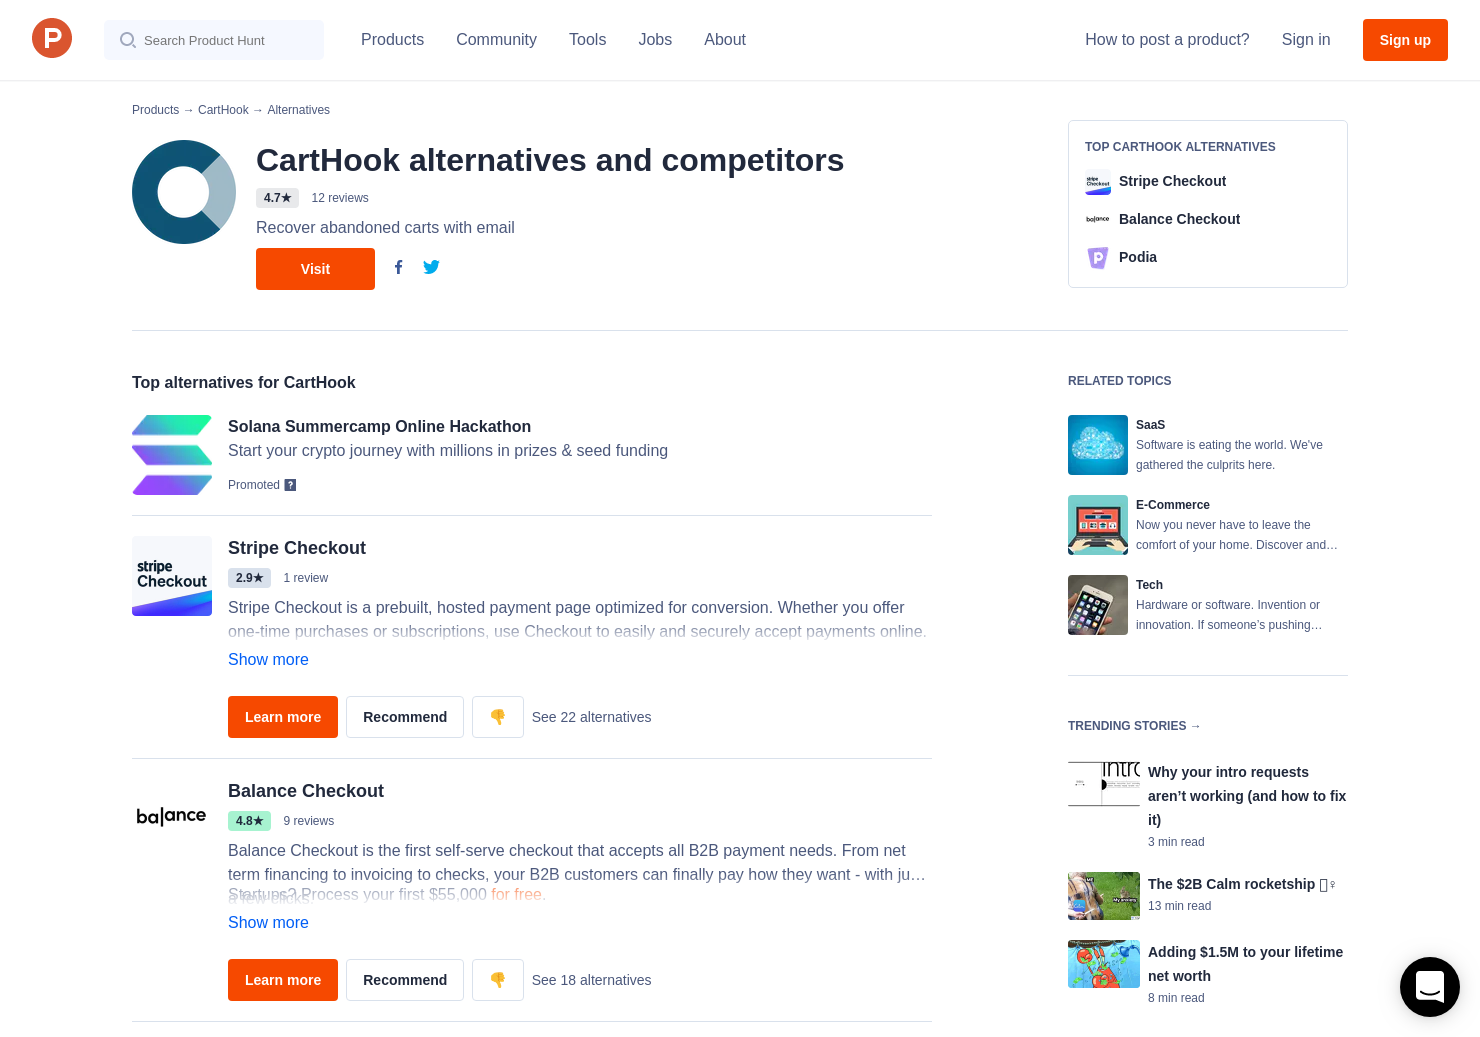 7 Alternatives to One-page checkout for Shopify | Product Hunt